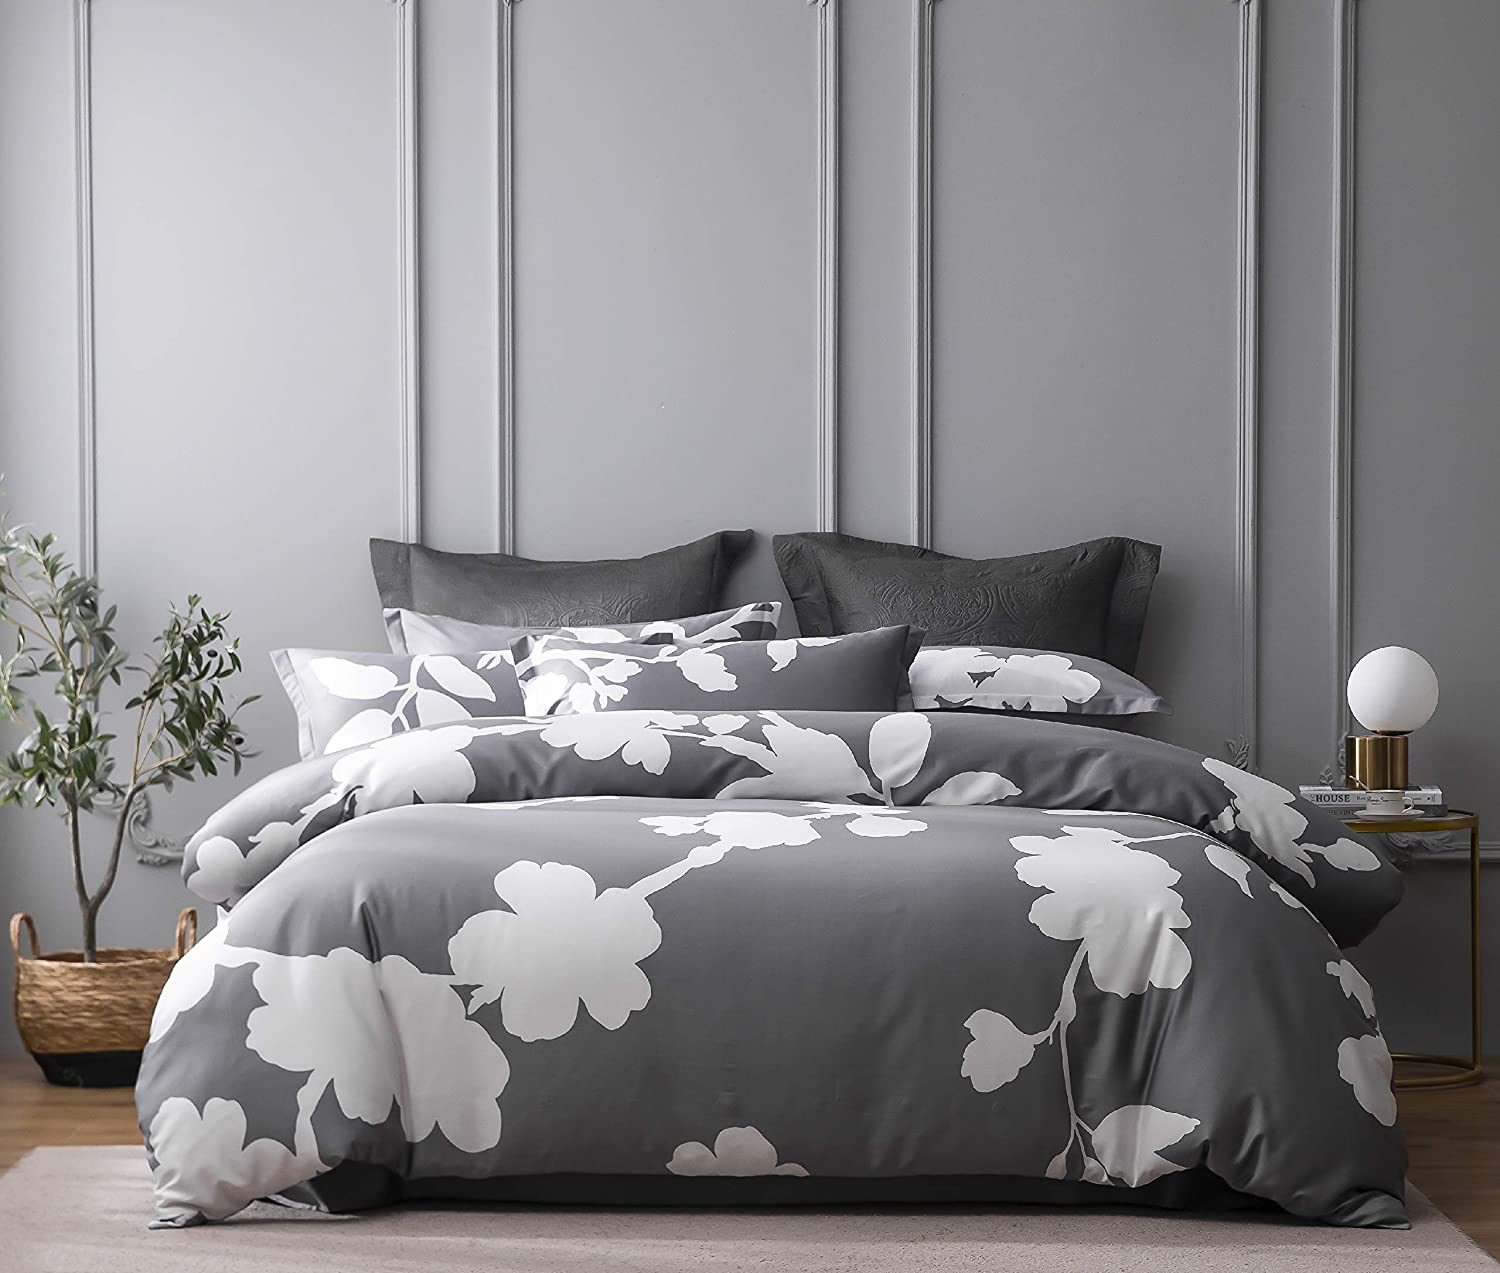 HOMEBOX Floral Duvet Cover Set Prin Flowers We OFFer at cheap prices OFFicial Queen Size Botanical